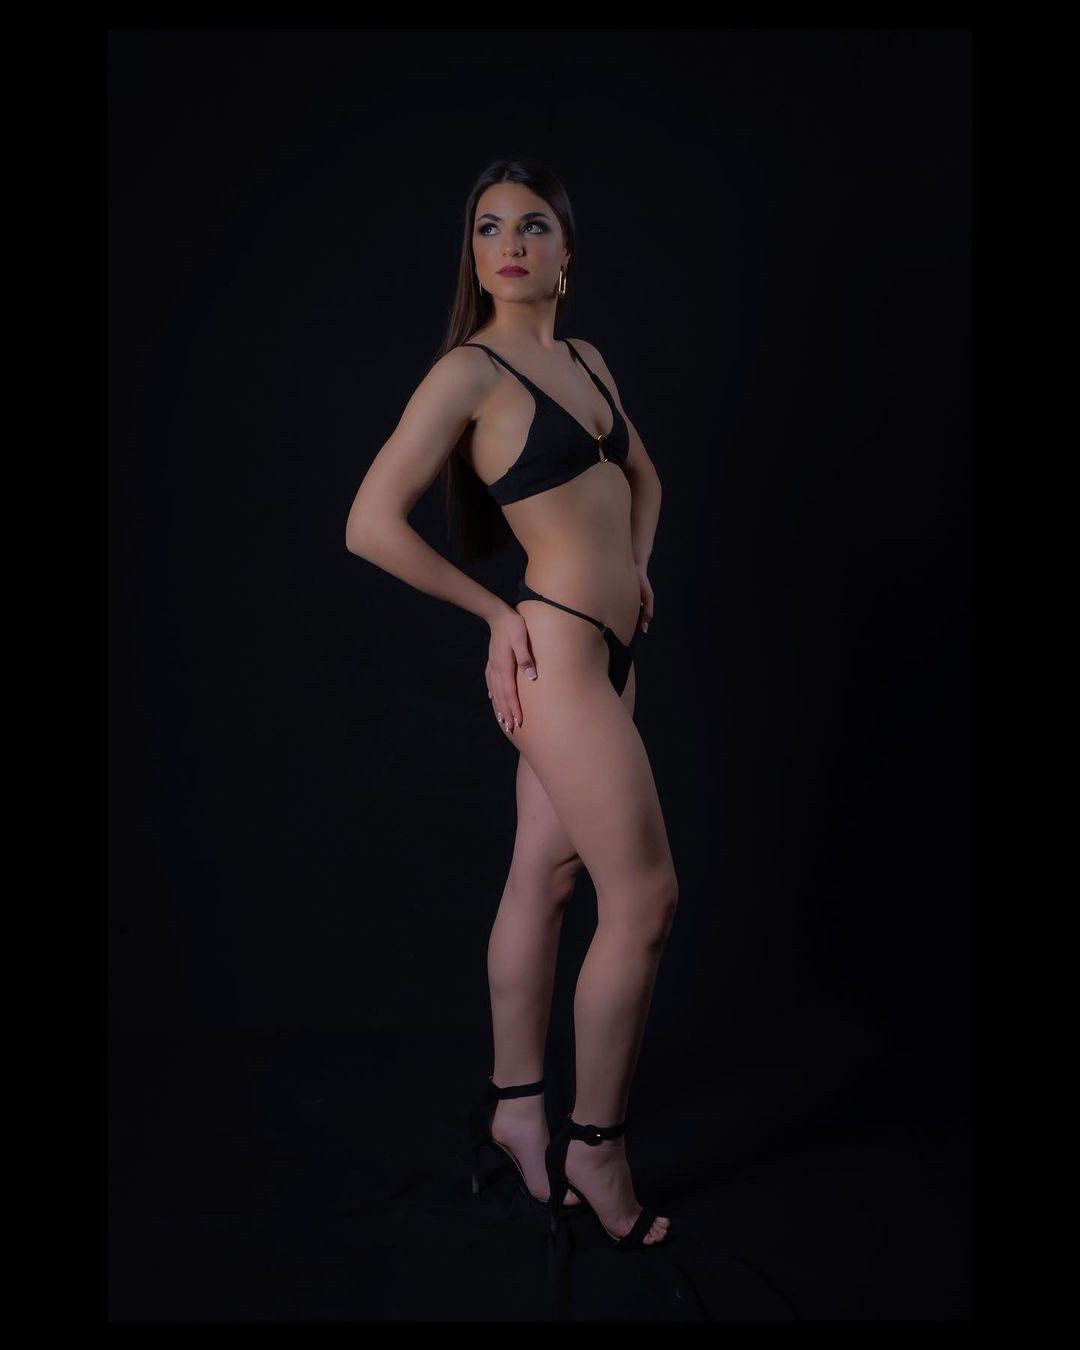 candidatas a miss grand spain 2021. final: 14 may. BqjYYB